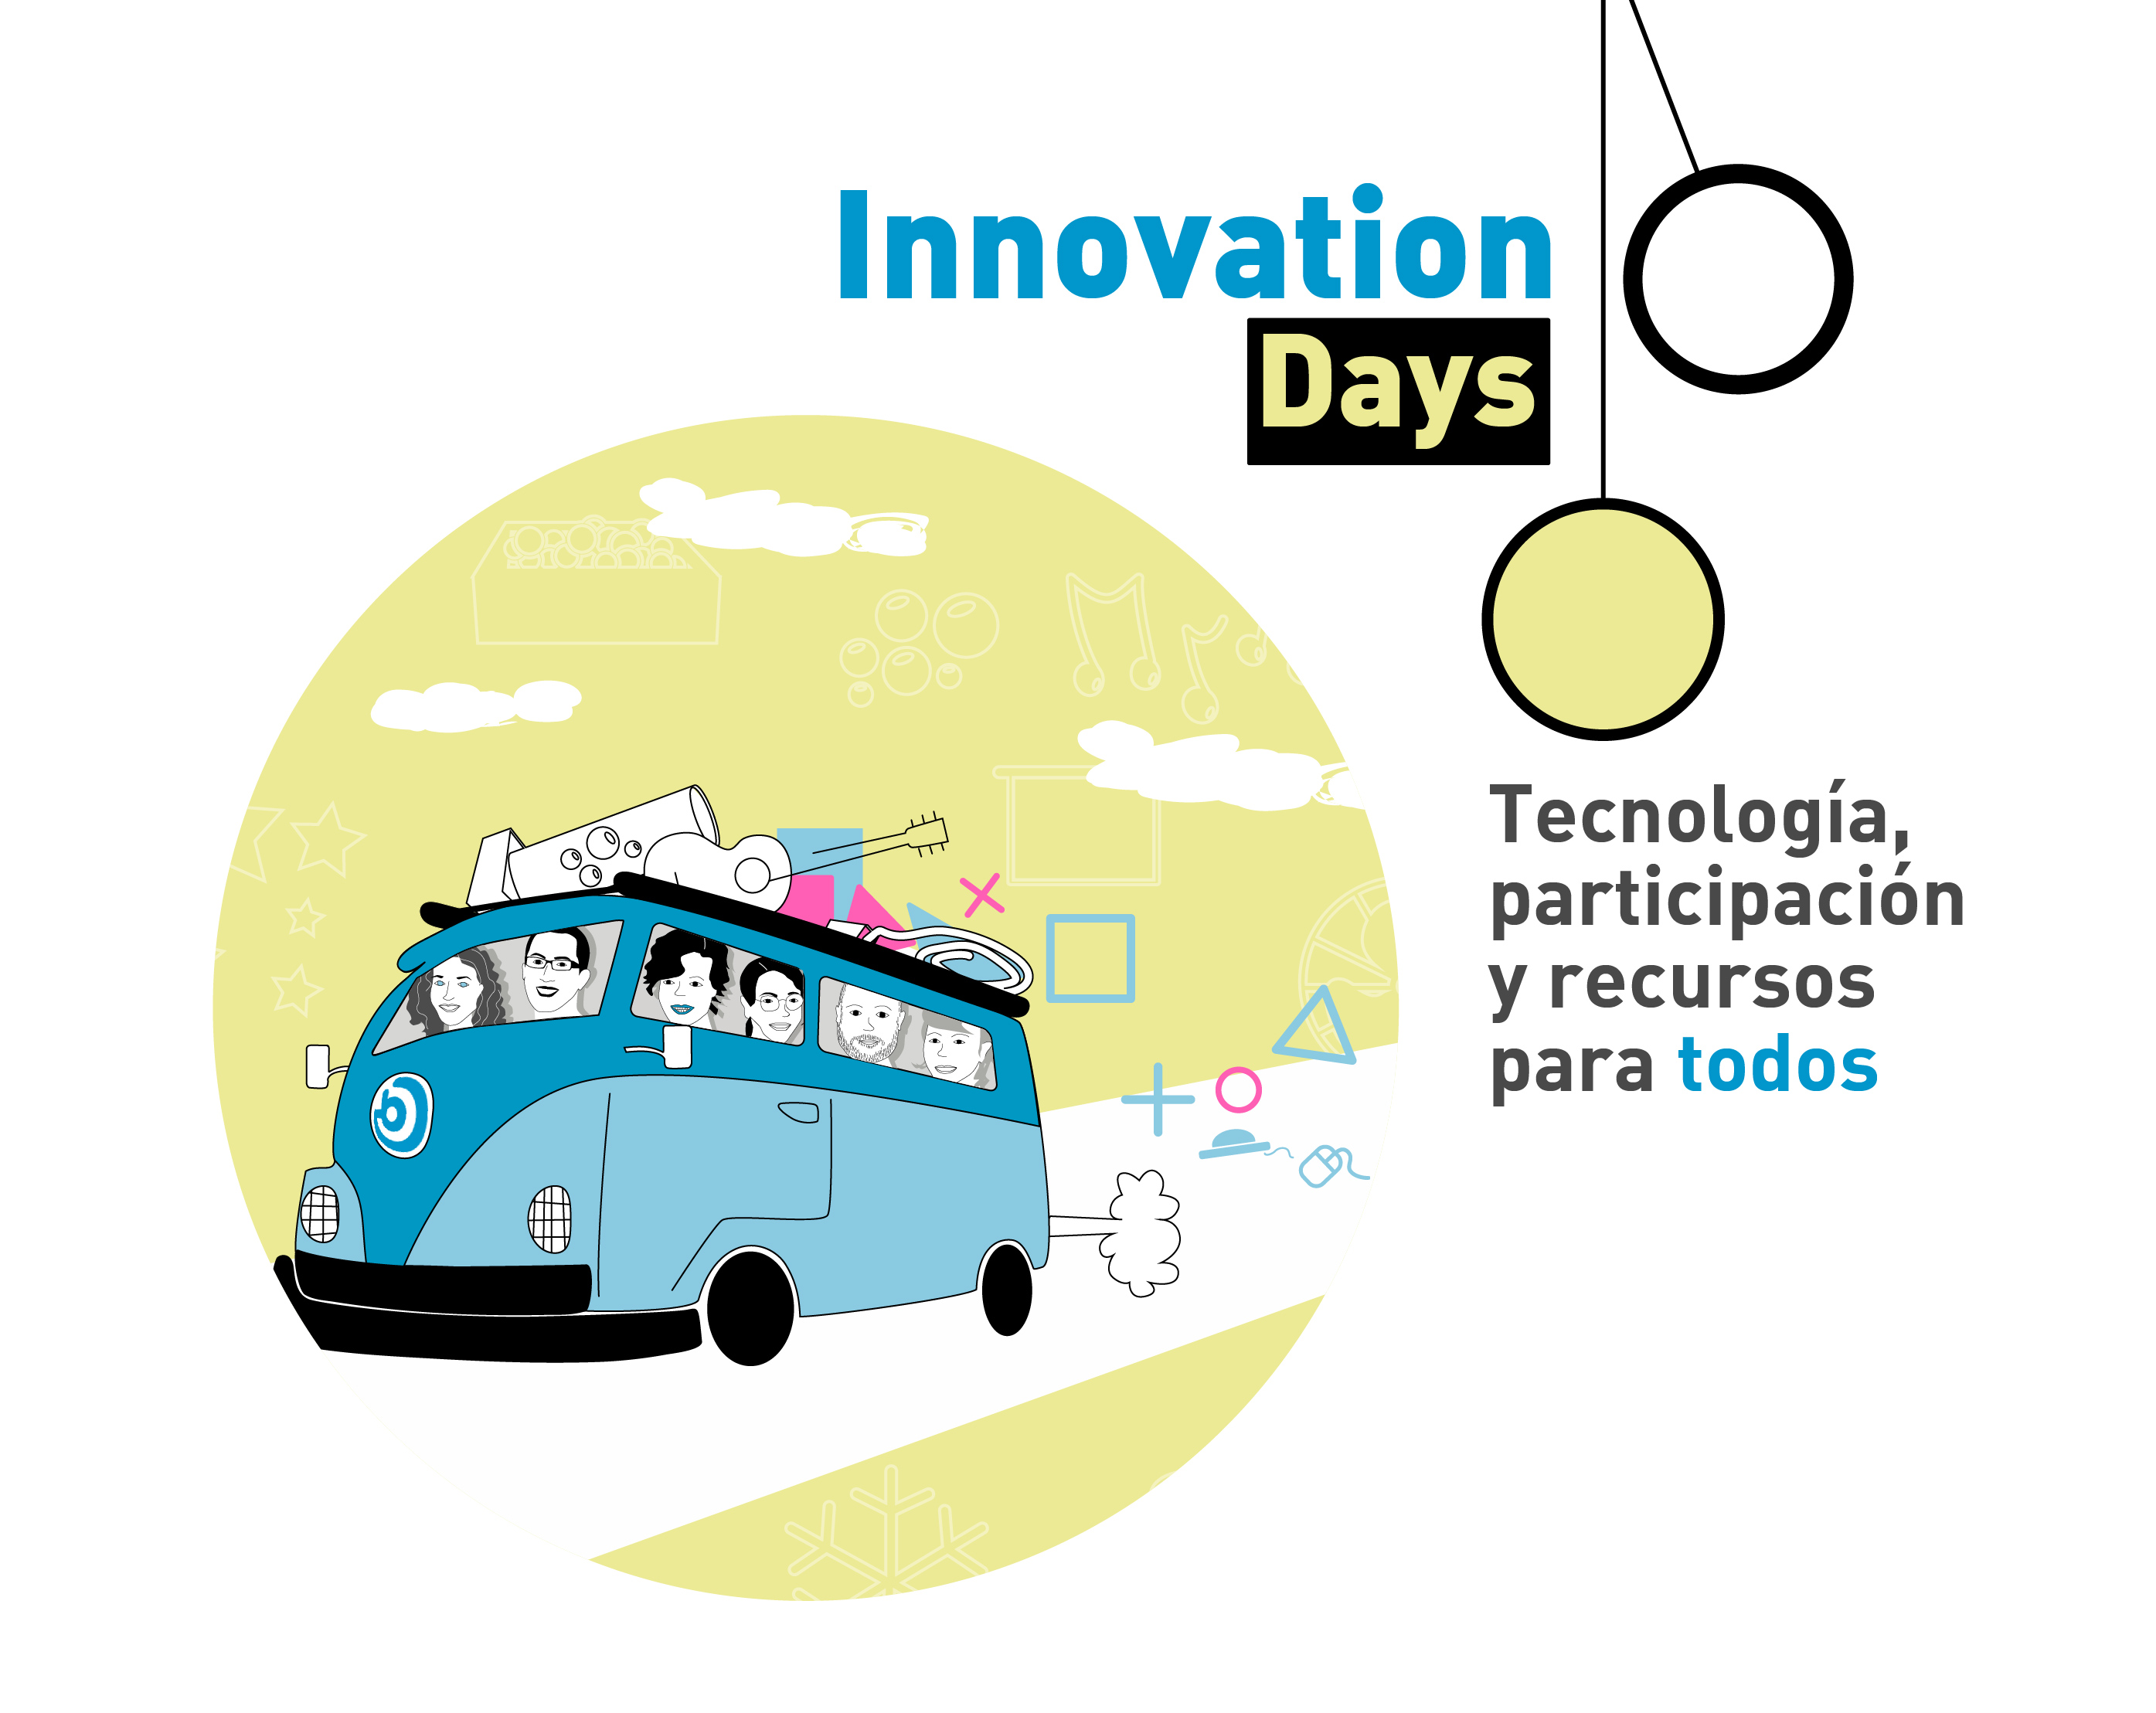 Innovation Days - Equipo de Asesores de BJ